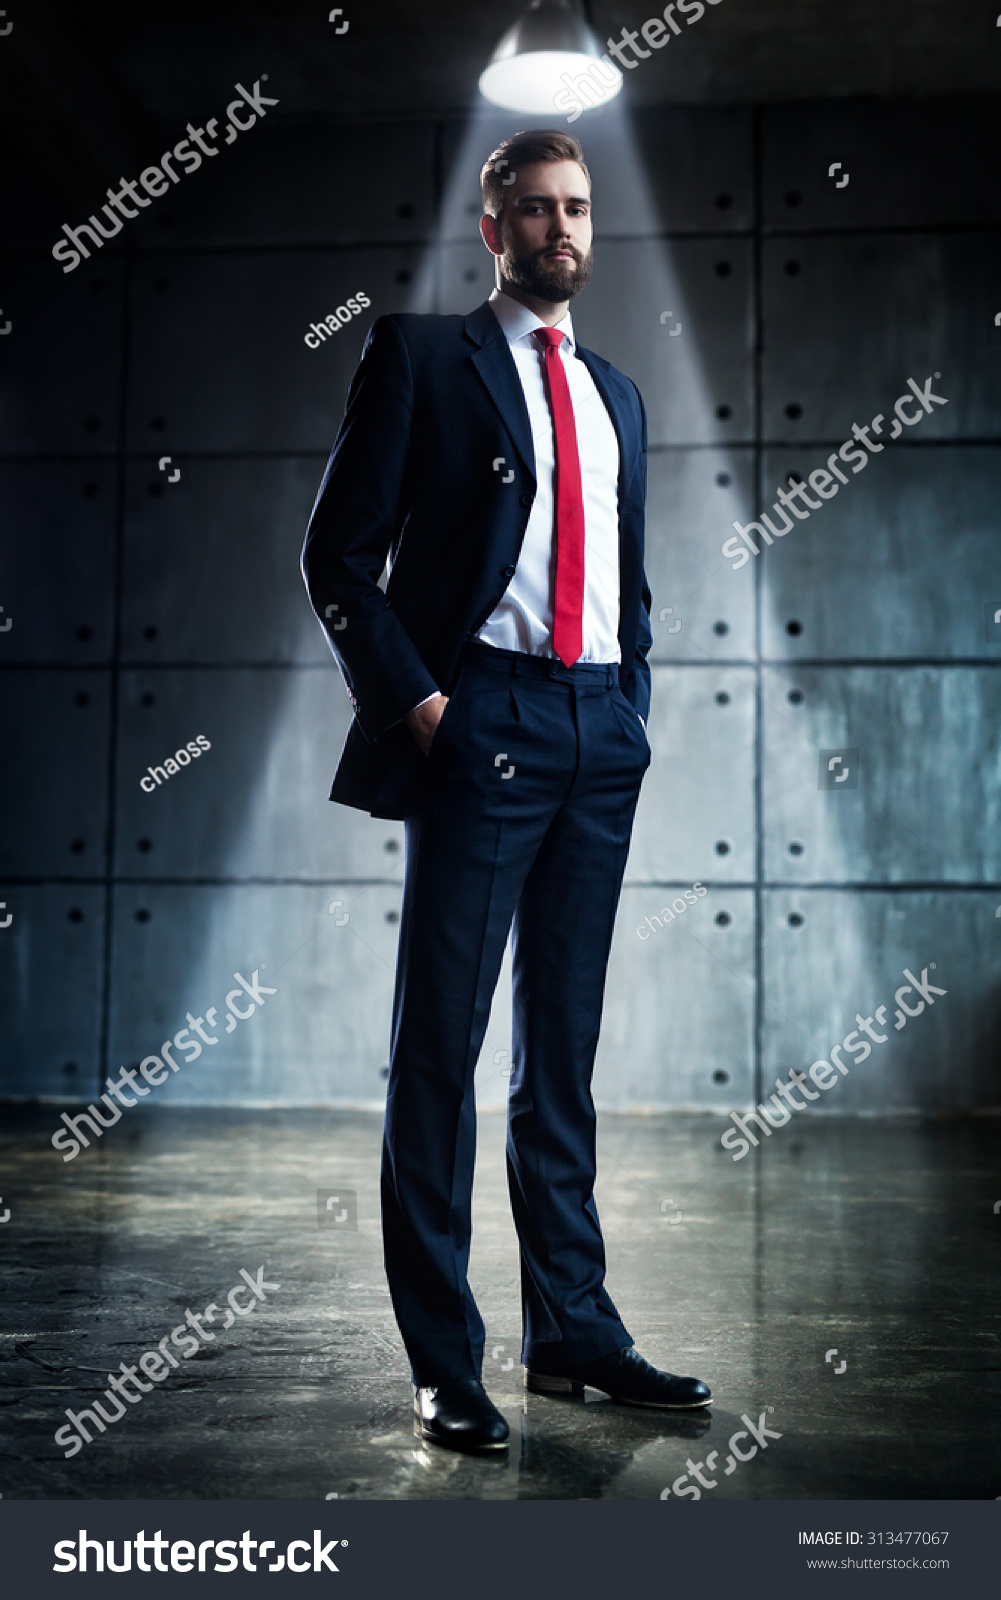 Young Handsome Businessman Beard Black Suit Stock Photo (Royalty ...